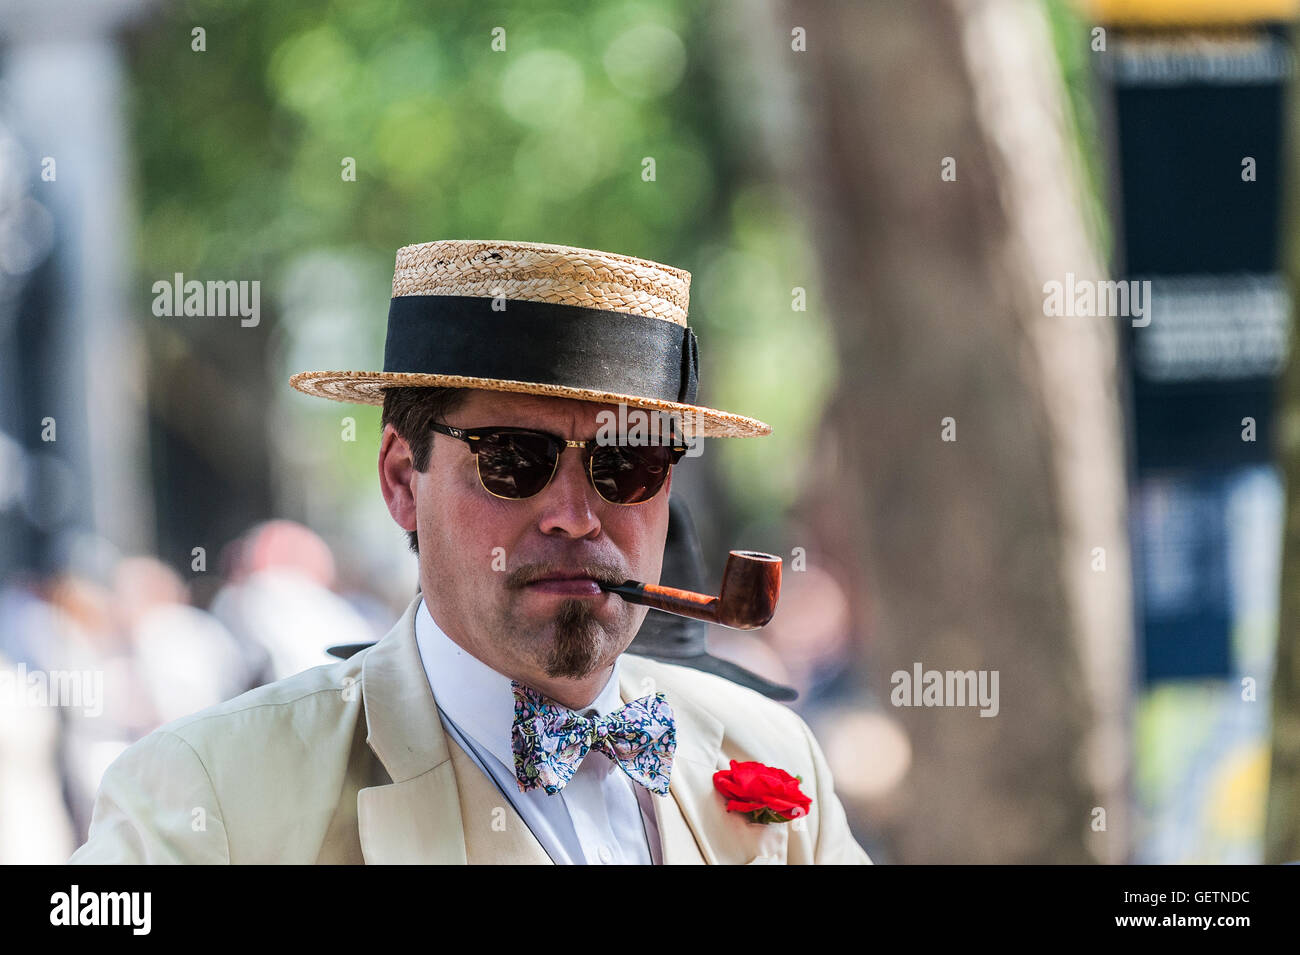 A chap wears a traditional straw boater and smokes a pipe at the Chap Olympiad. - Stock Image